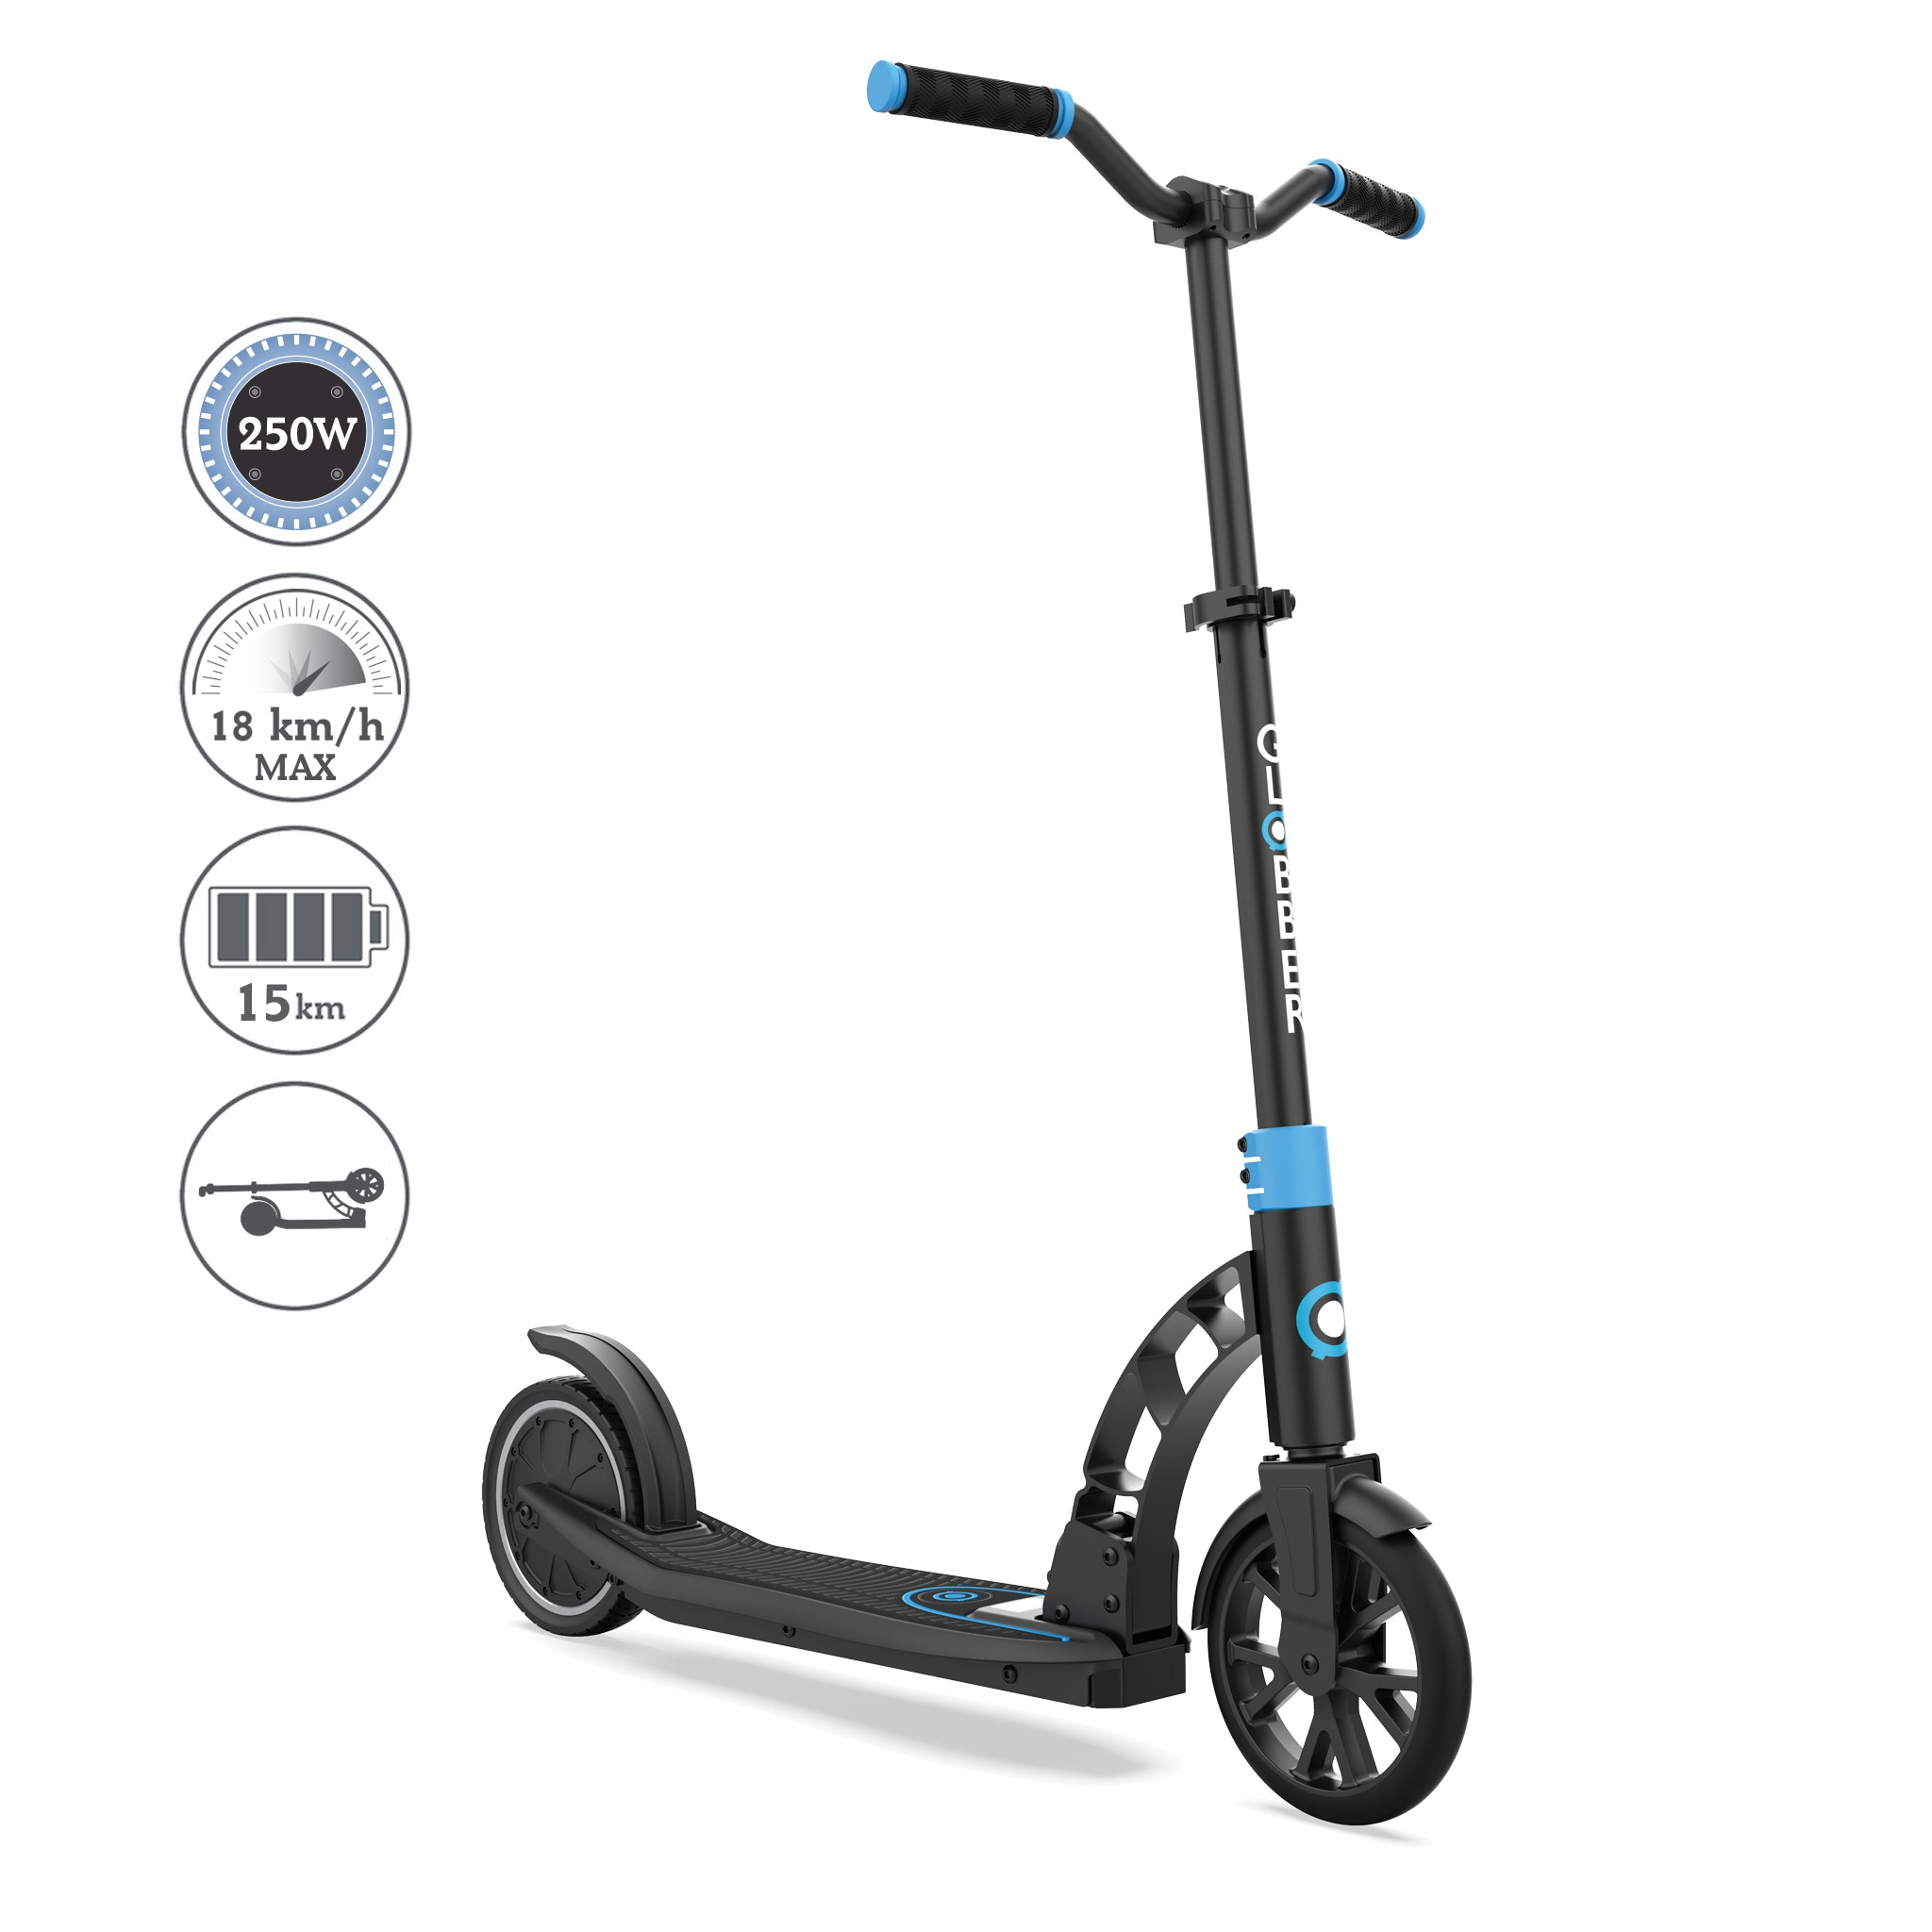 Globber-ONE-K-E-MOTION-15-foldable-electric-scooter-for-teens-and-young-adults-aged-14+-sky-blue